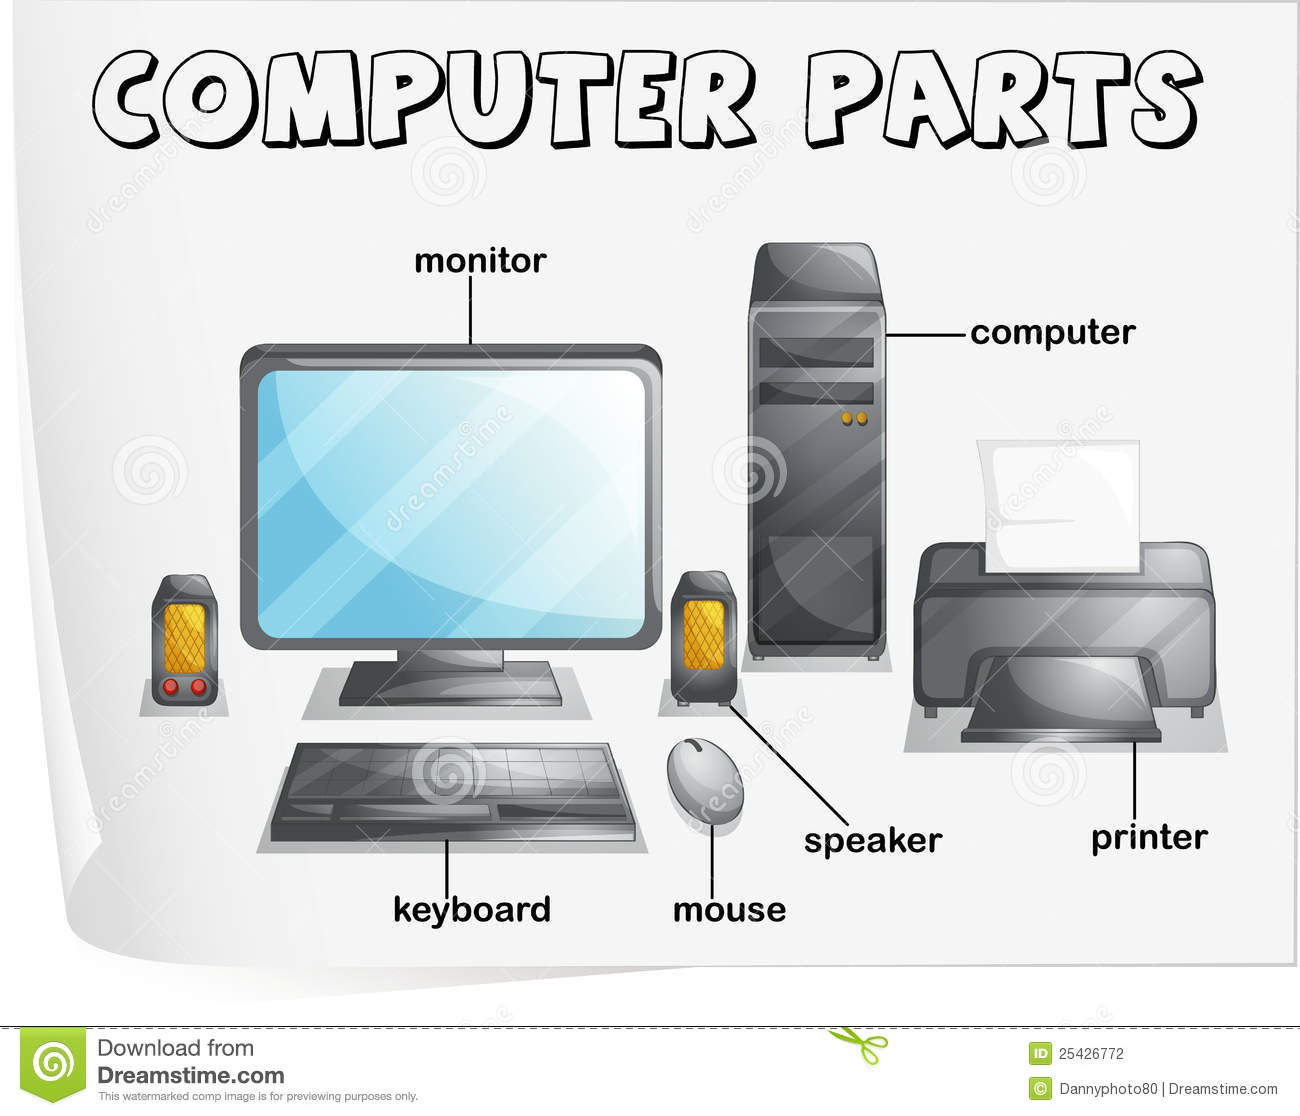 Worksheets Computer Lab Worksheets computer lab rules day 1 grades and 2 lessons tes teach done vocabulary worksheet stock images image 27179054